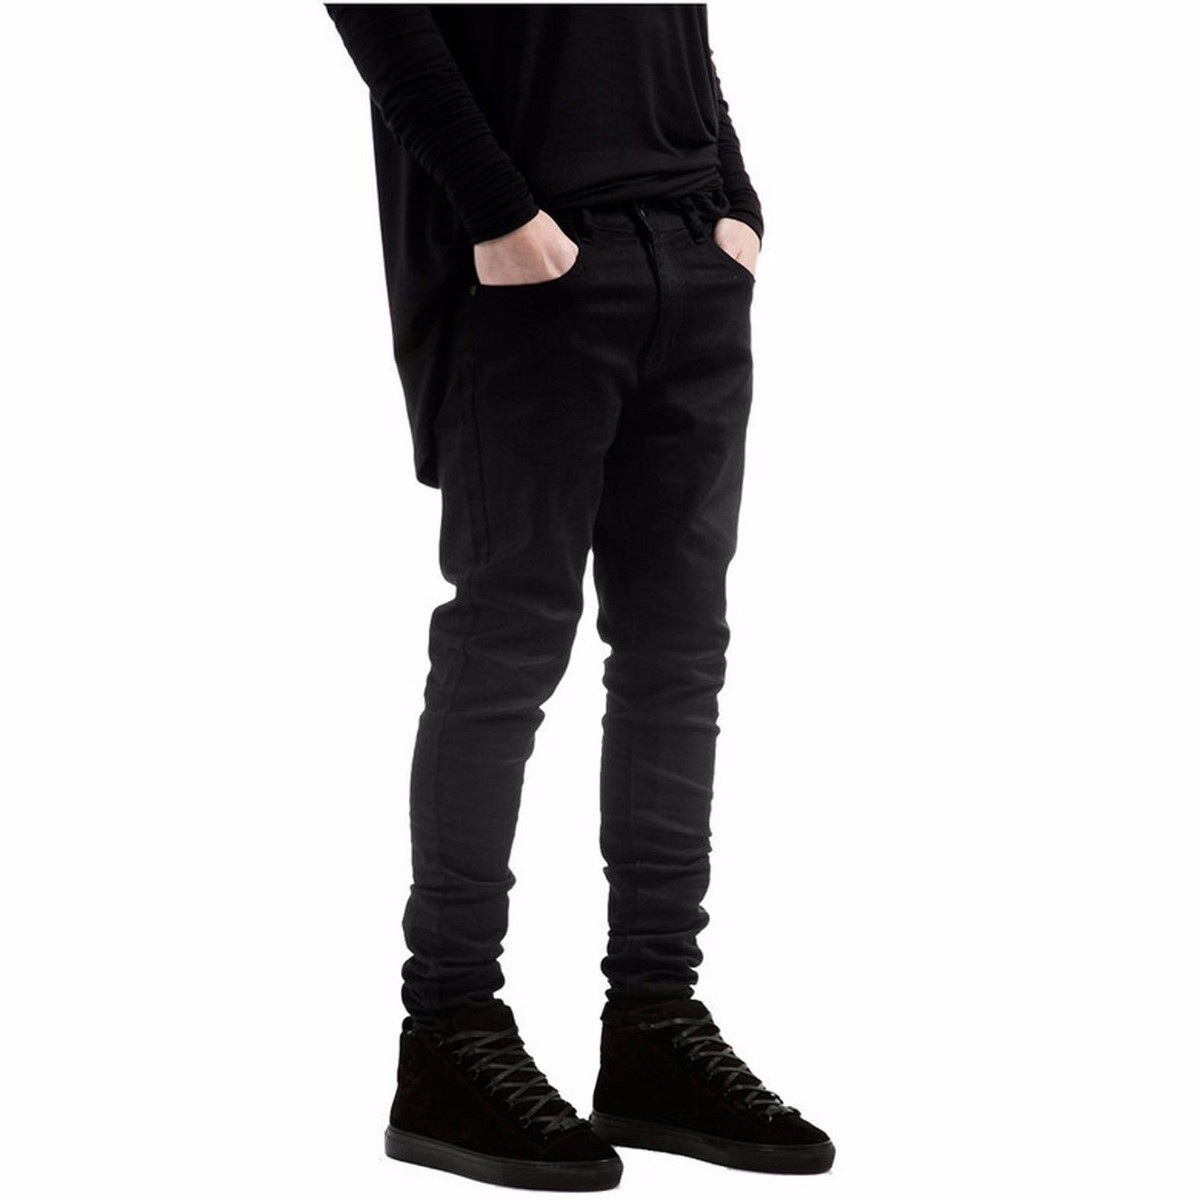 Black men Denim jeans Skinny jeans All black Slim Fit straight